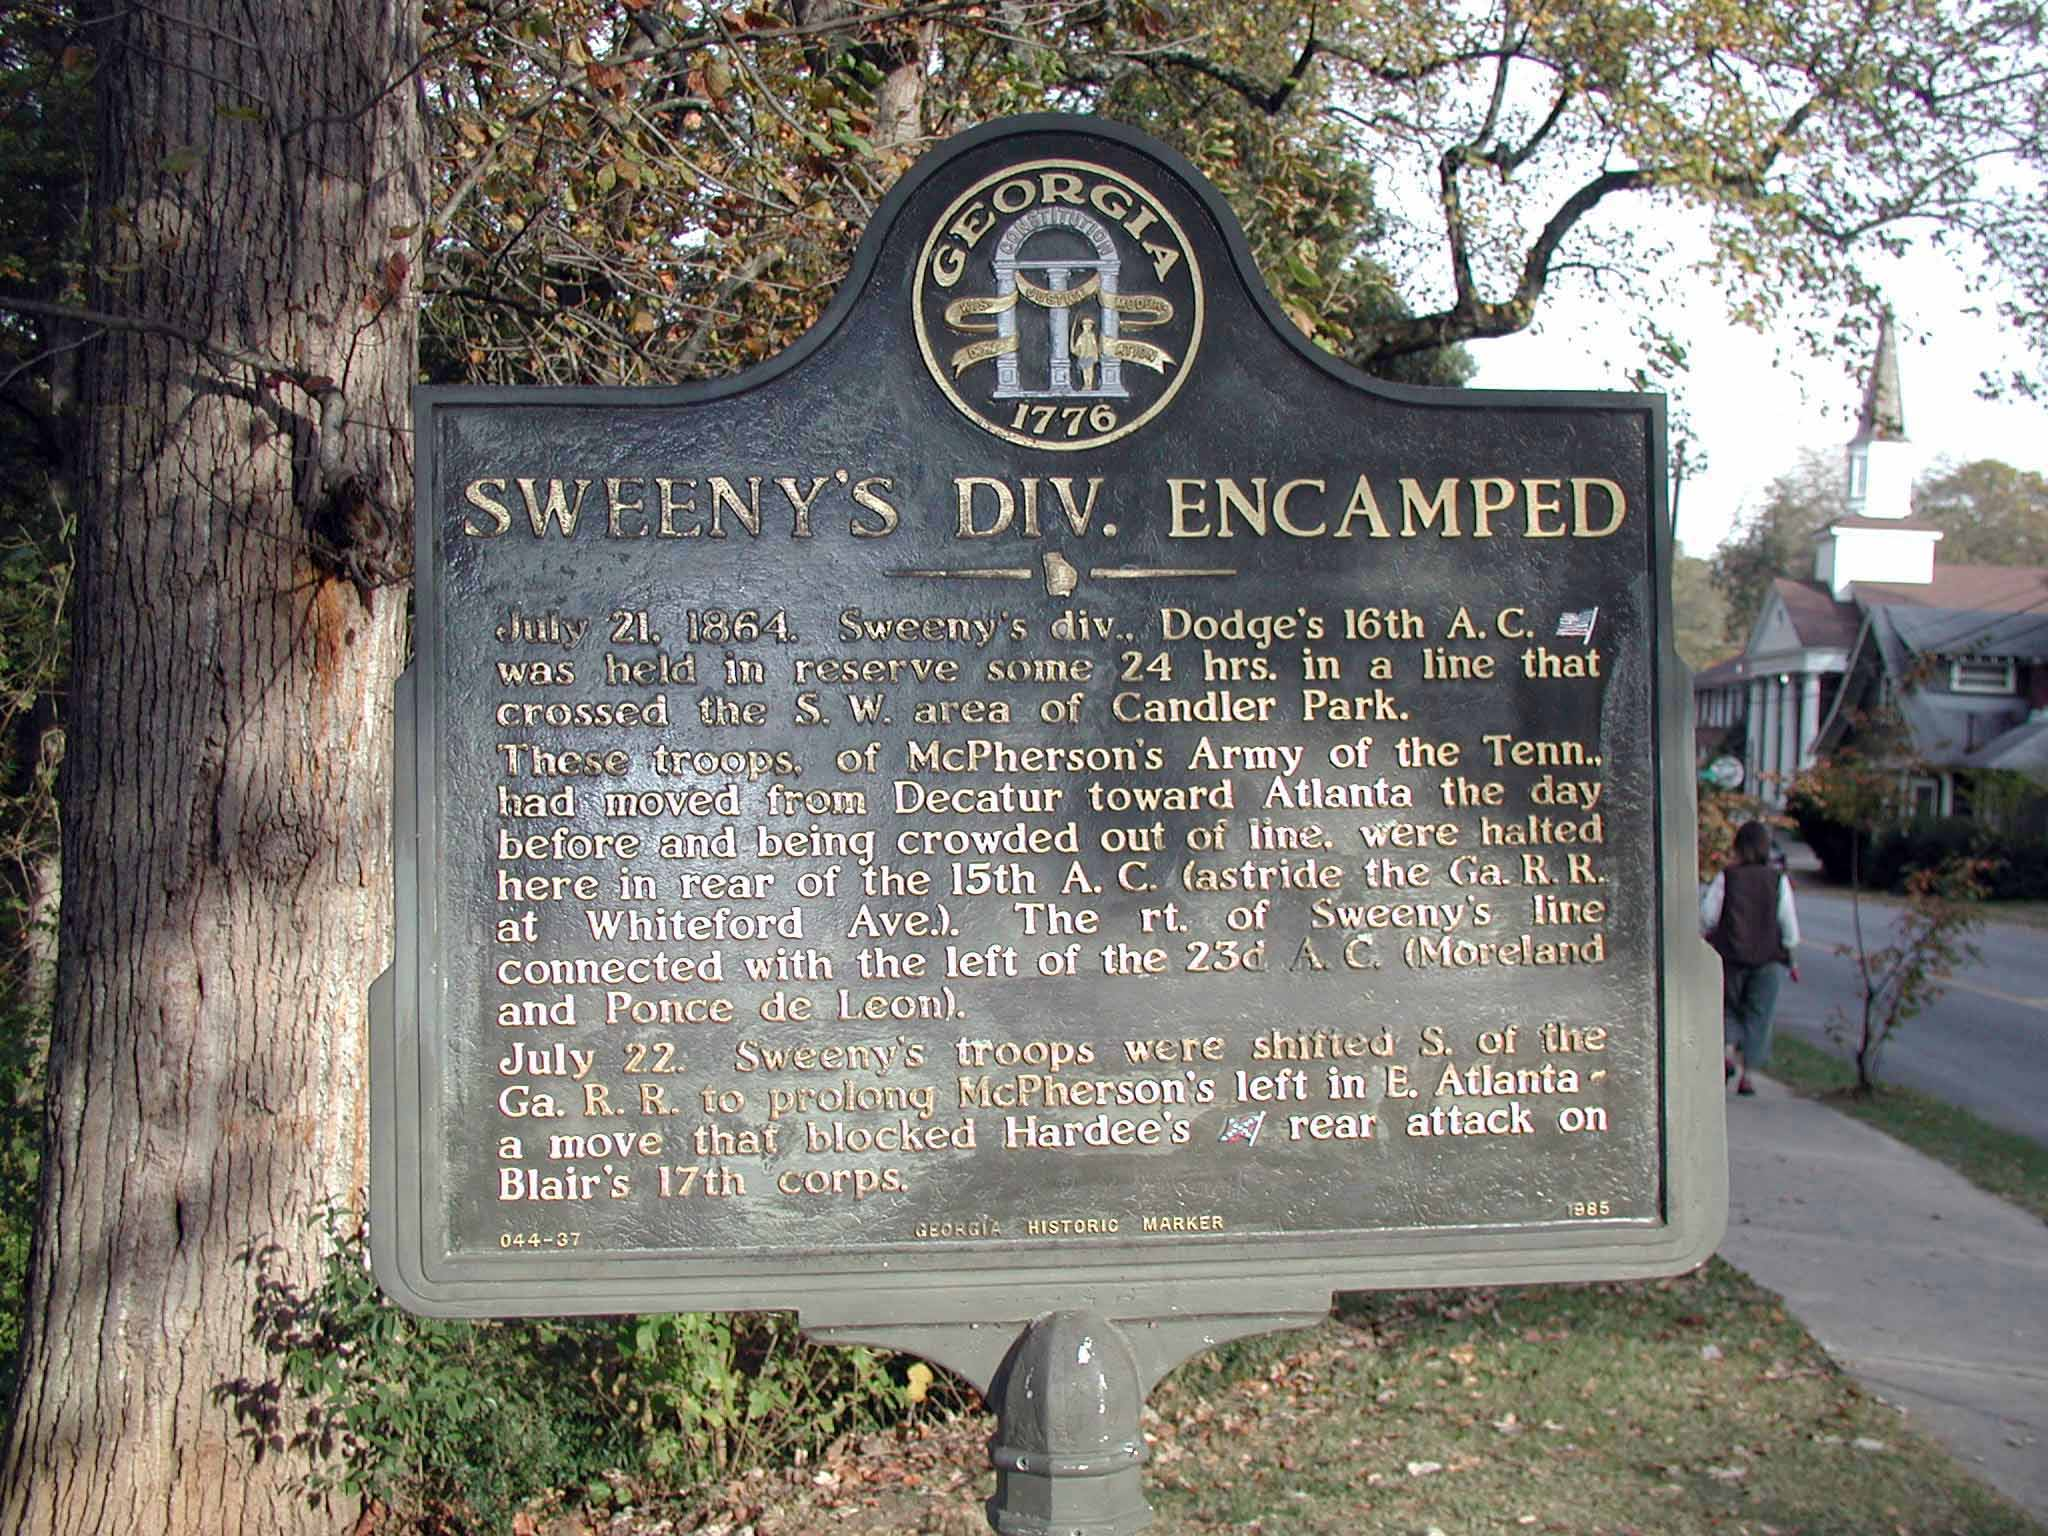 Sweeny's Division Encamped, click photo to enlarge.